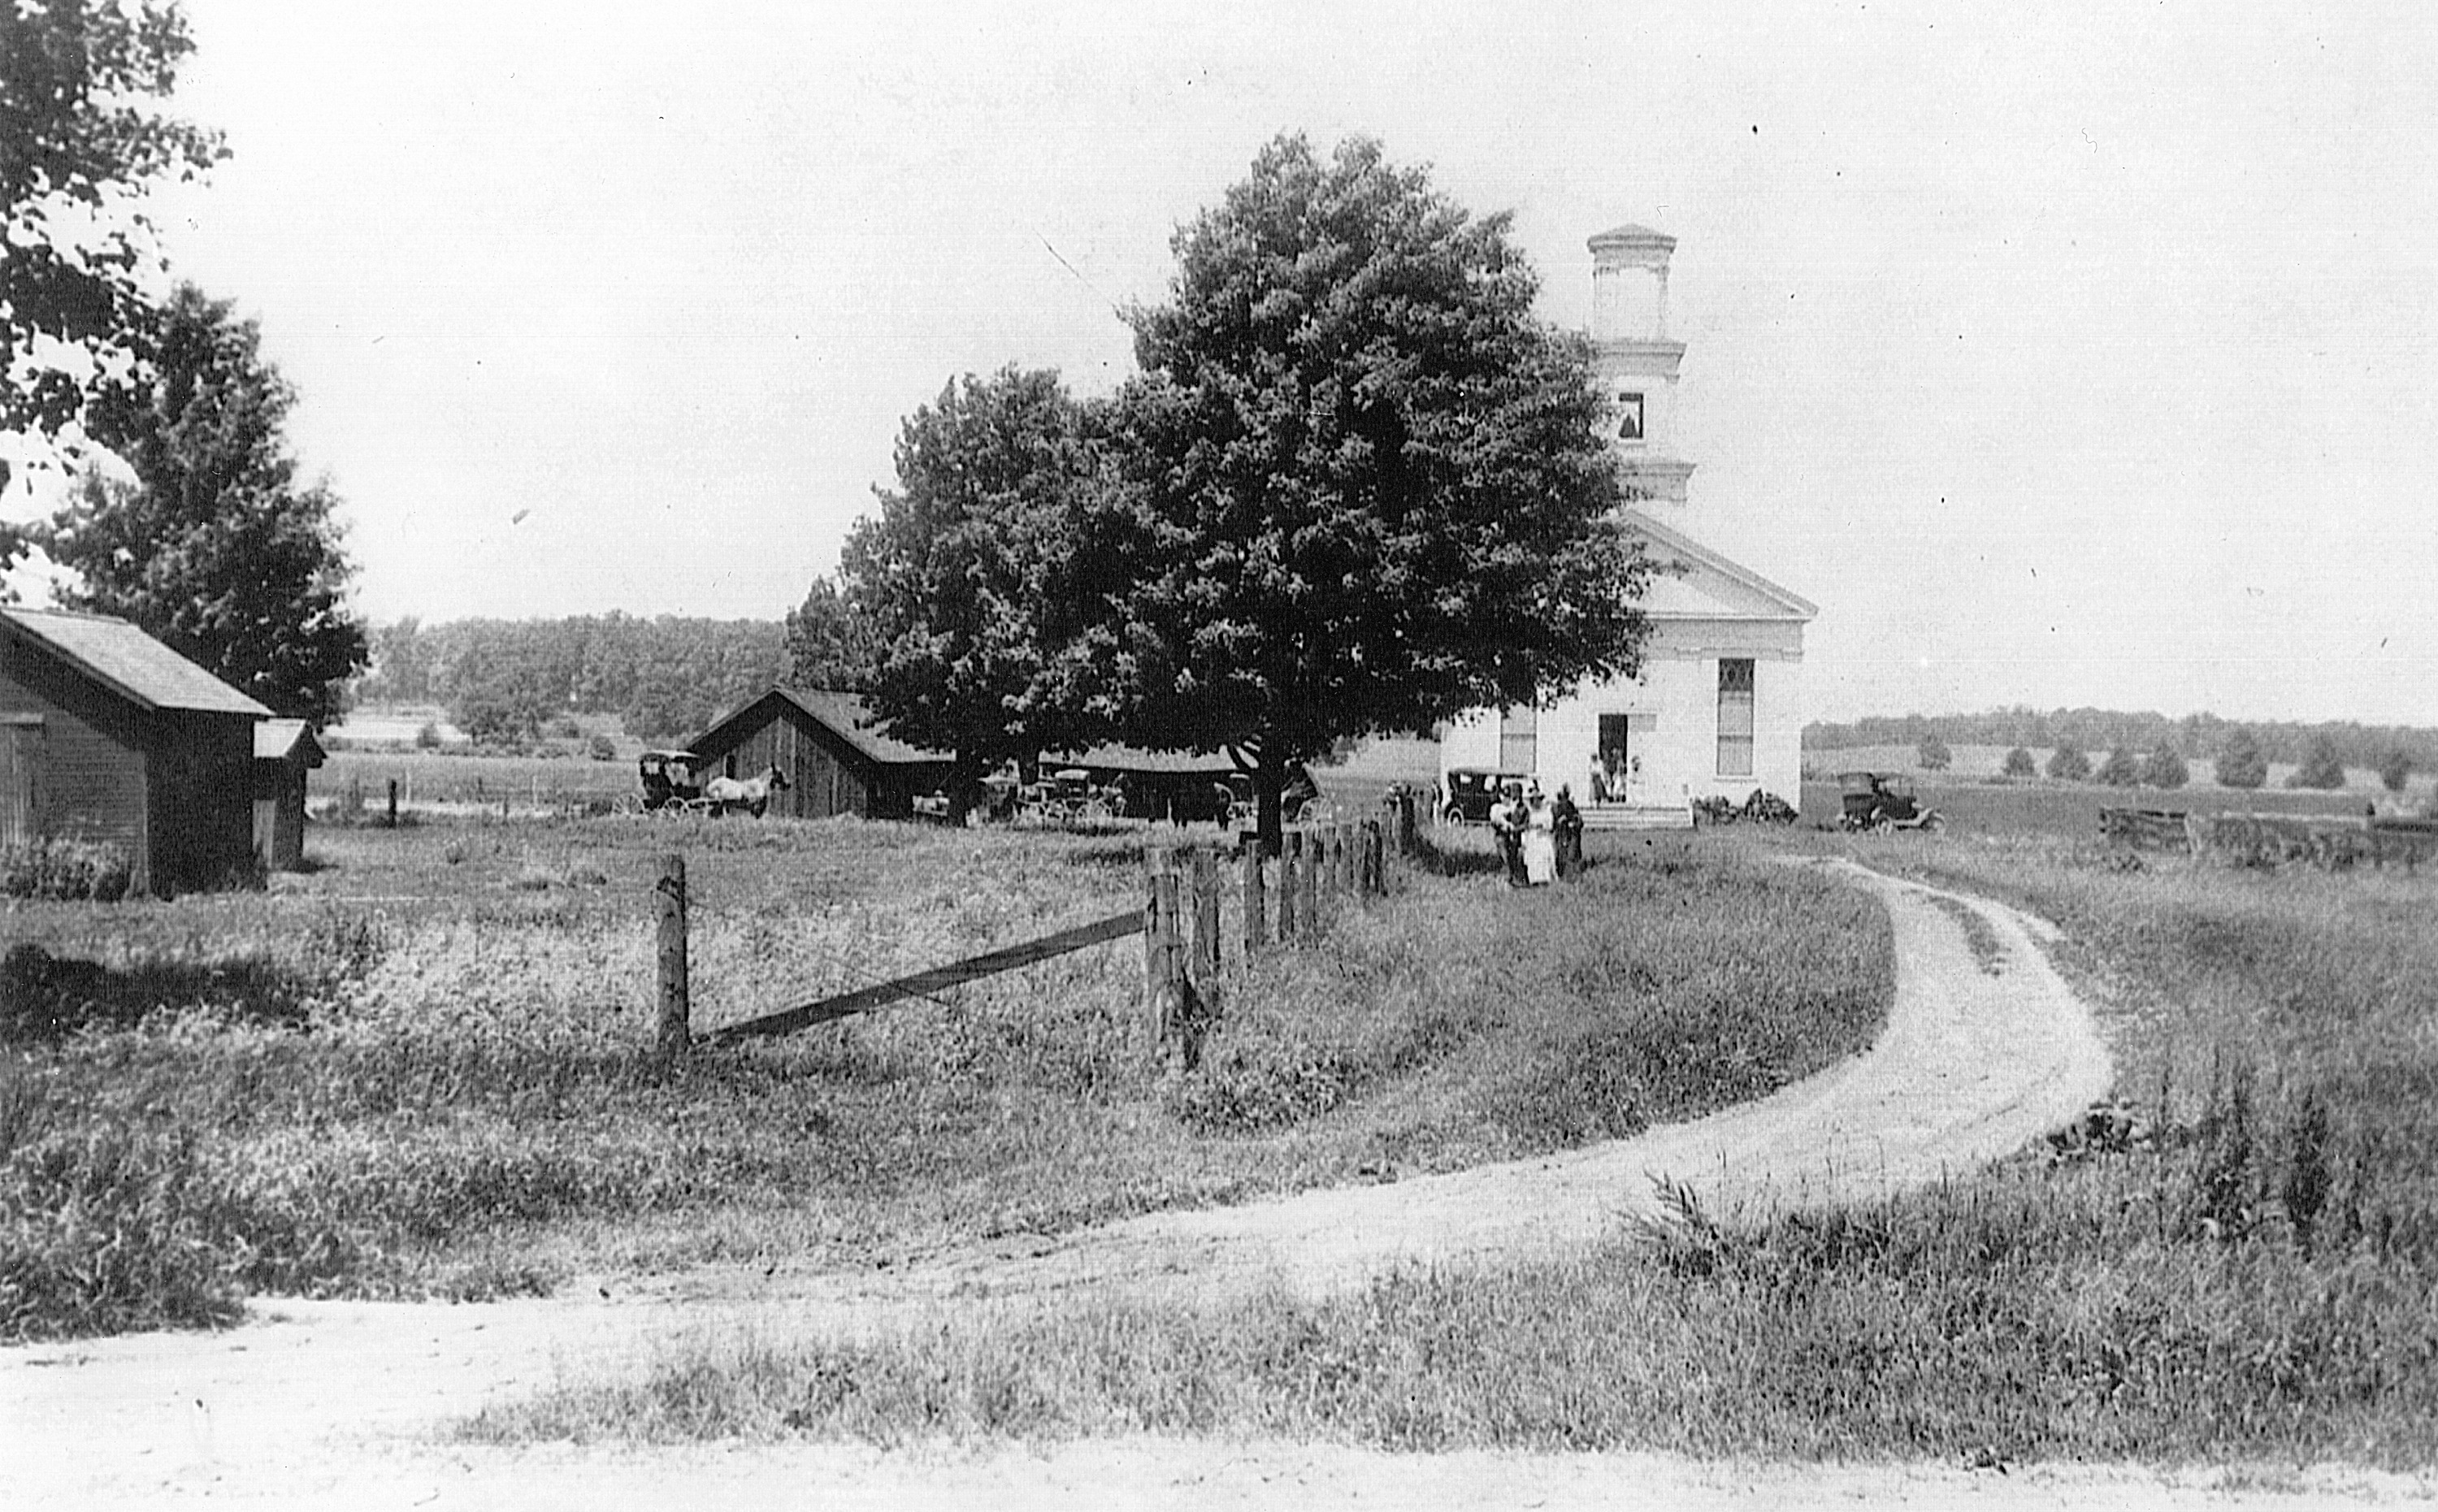 Dixboro Methodist Church, ca. 1916 image